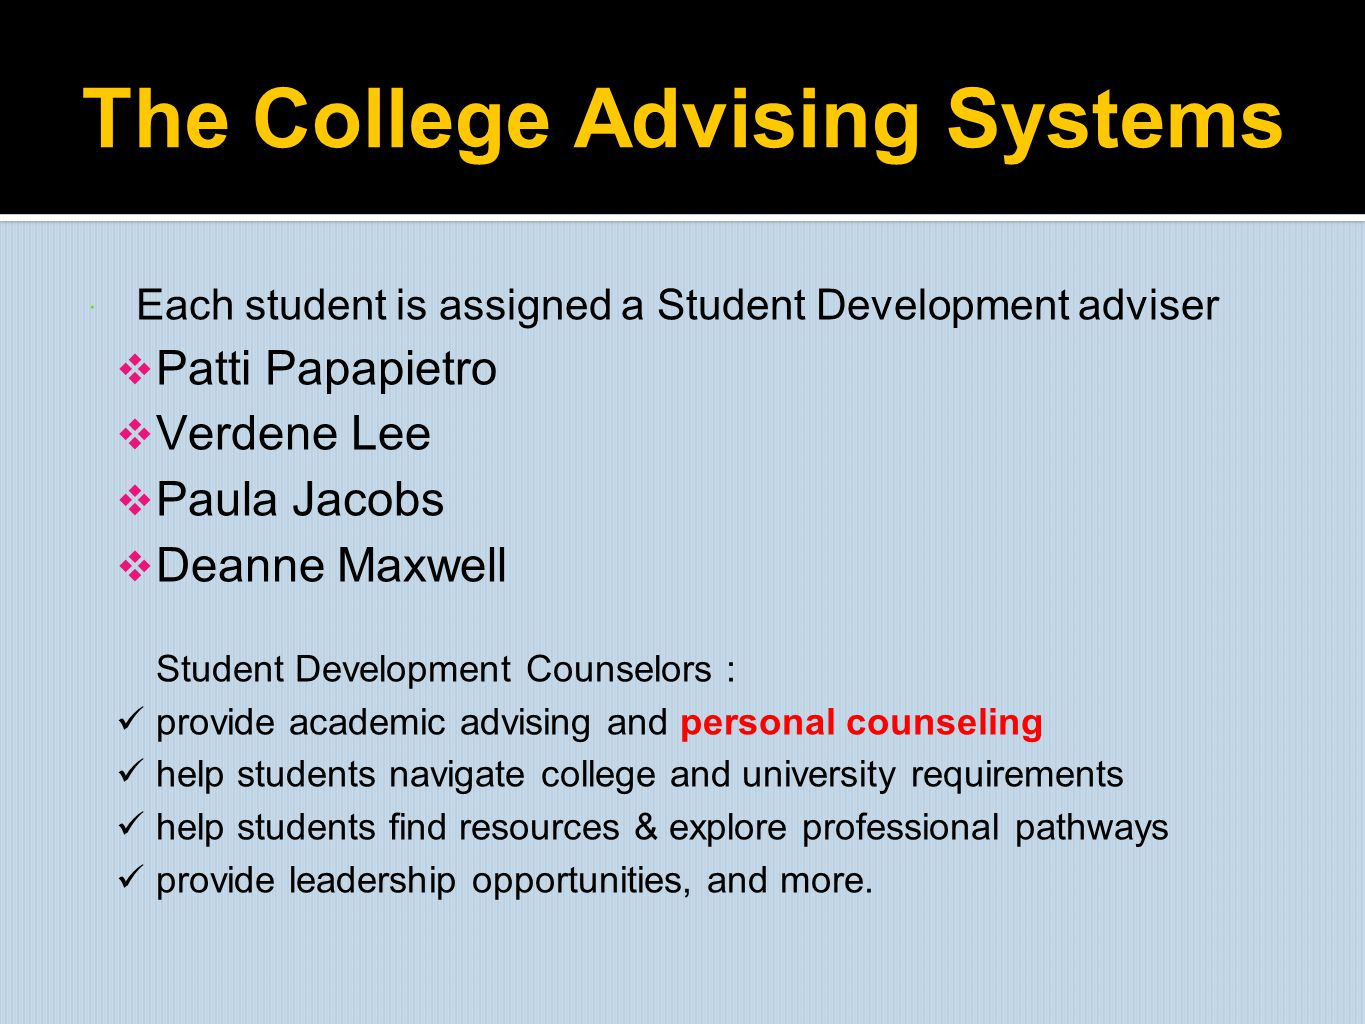 The College Advising Systems